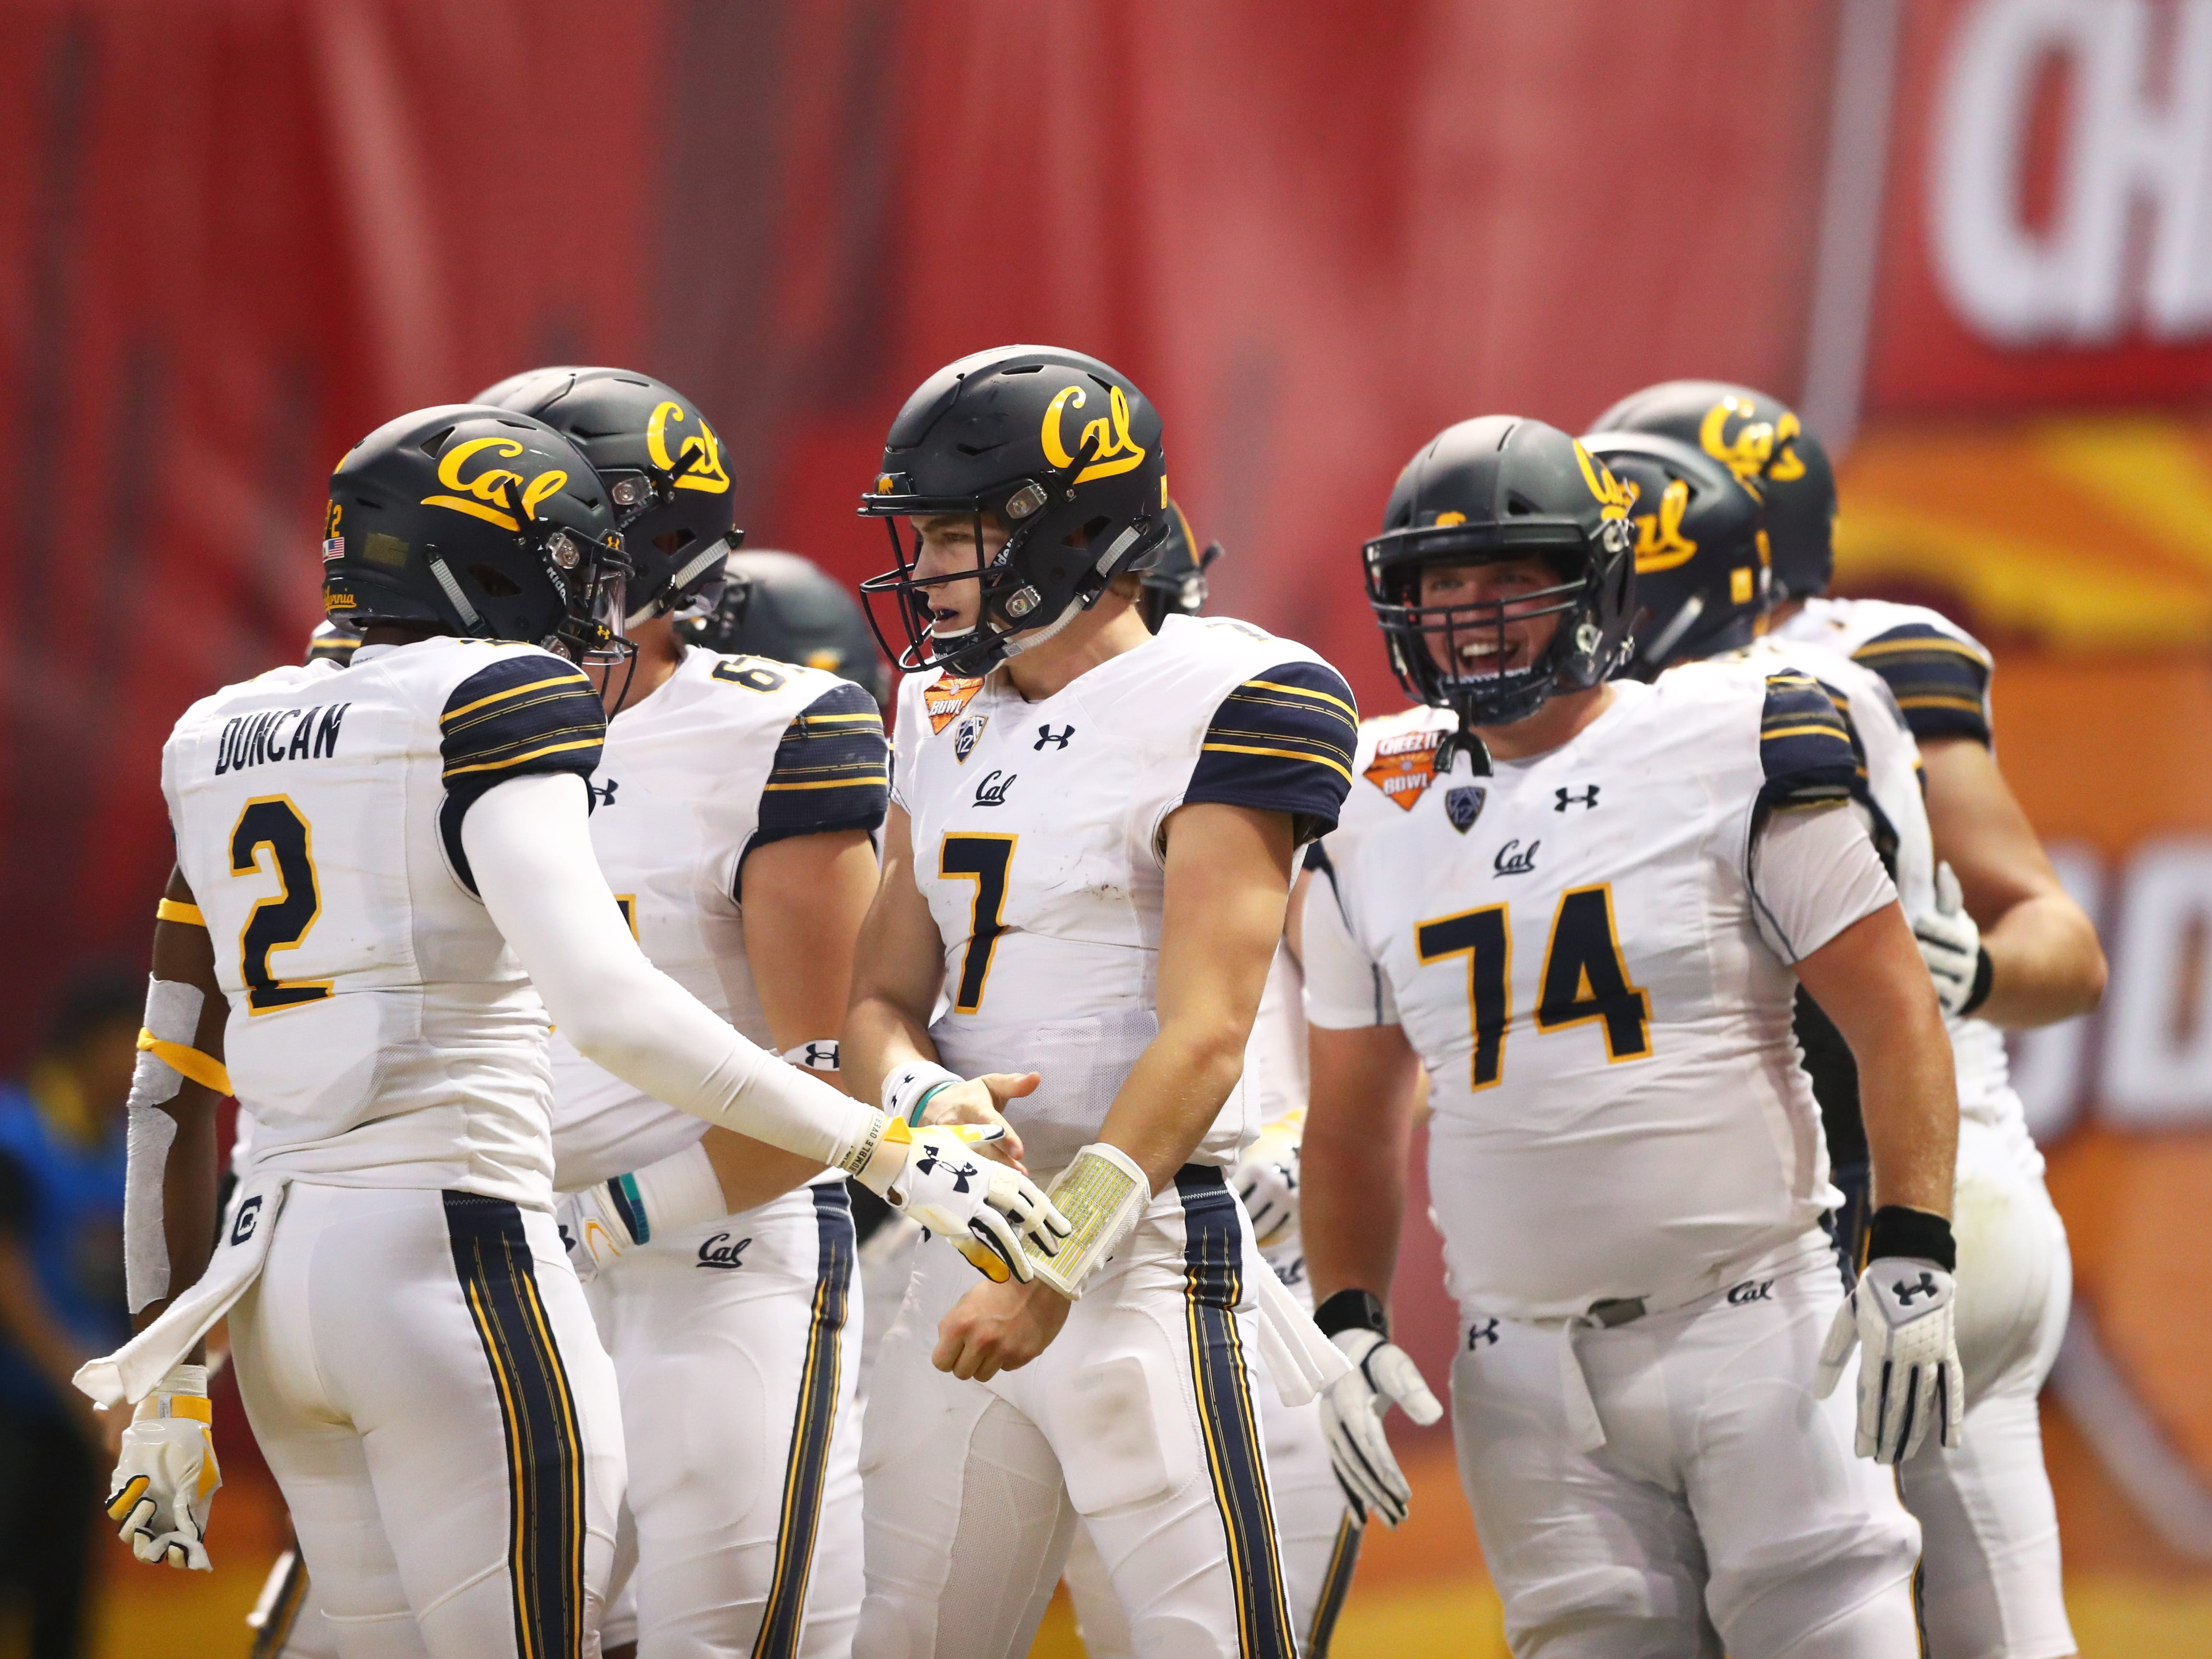 Dec 26, 2018; Phoenix, AZ, USA; California Golden Bears quarterback Chase Garbers (7) celebrates with teammates after scoring a touchdown against the Texas Christian Horned Frogs in the first quarter of the 2018 Cheez-It Bowl at Chase Field.